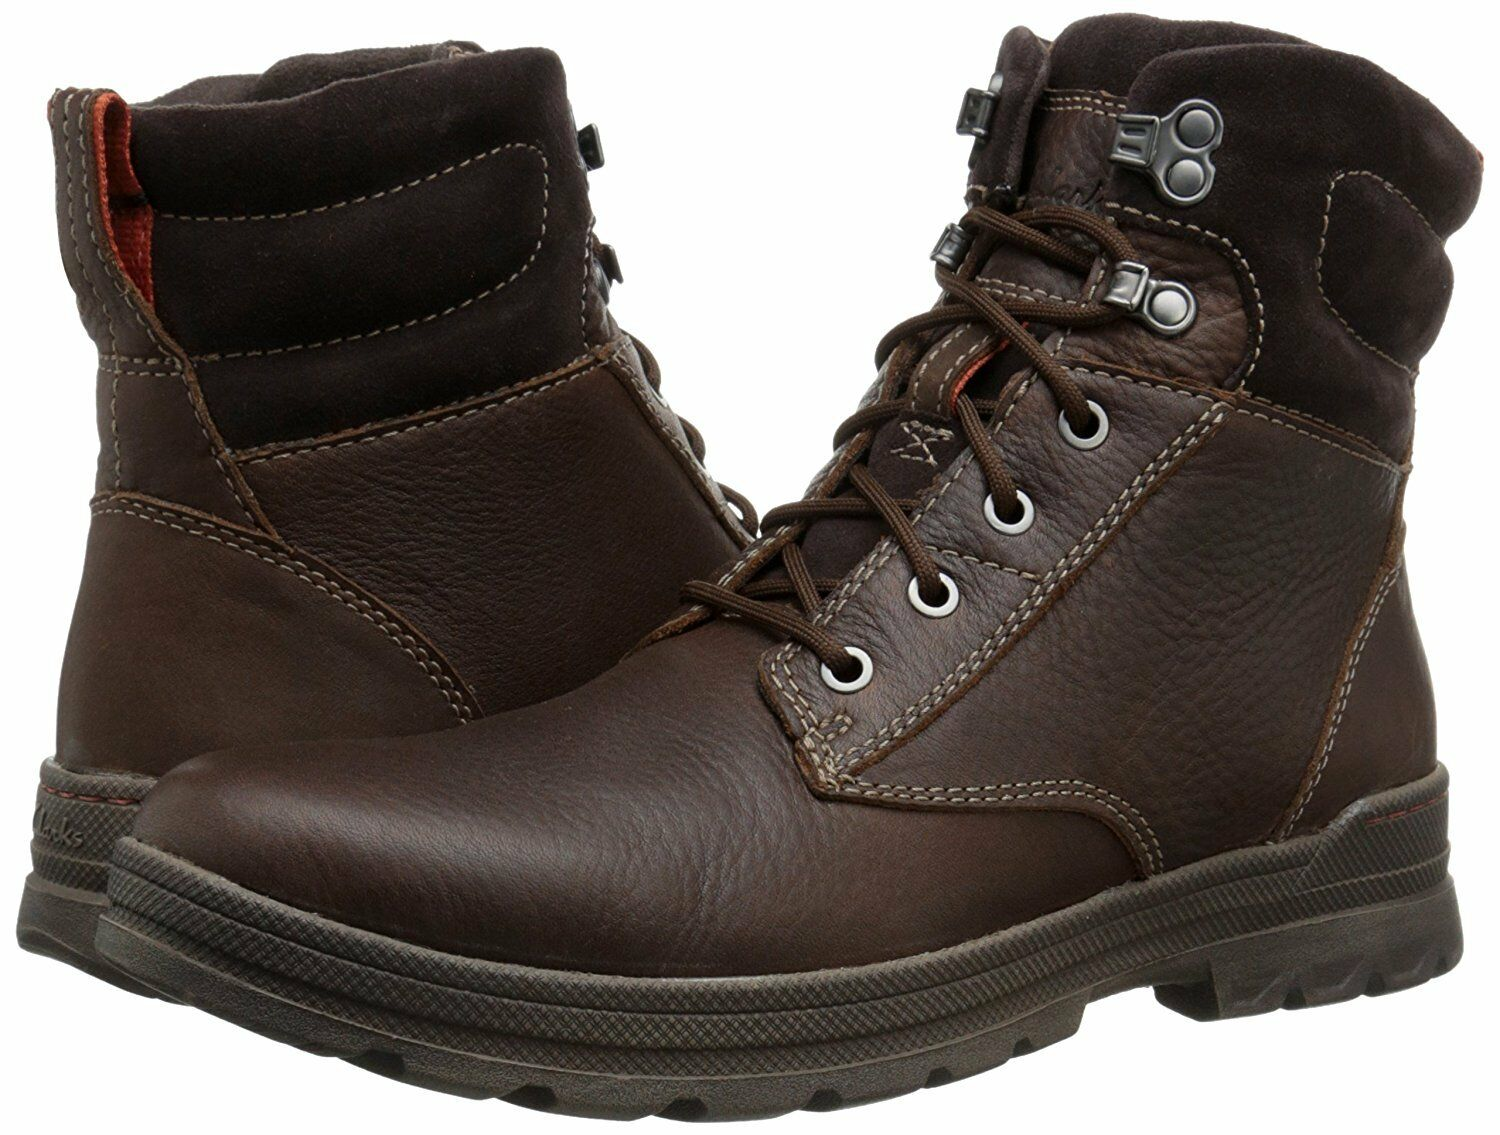 Clarks Men's Ryerson Rise Winter Boot